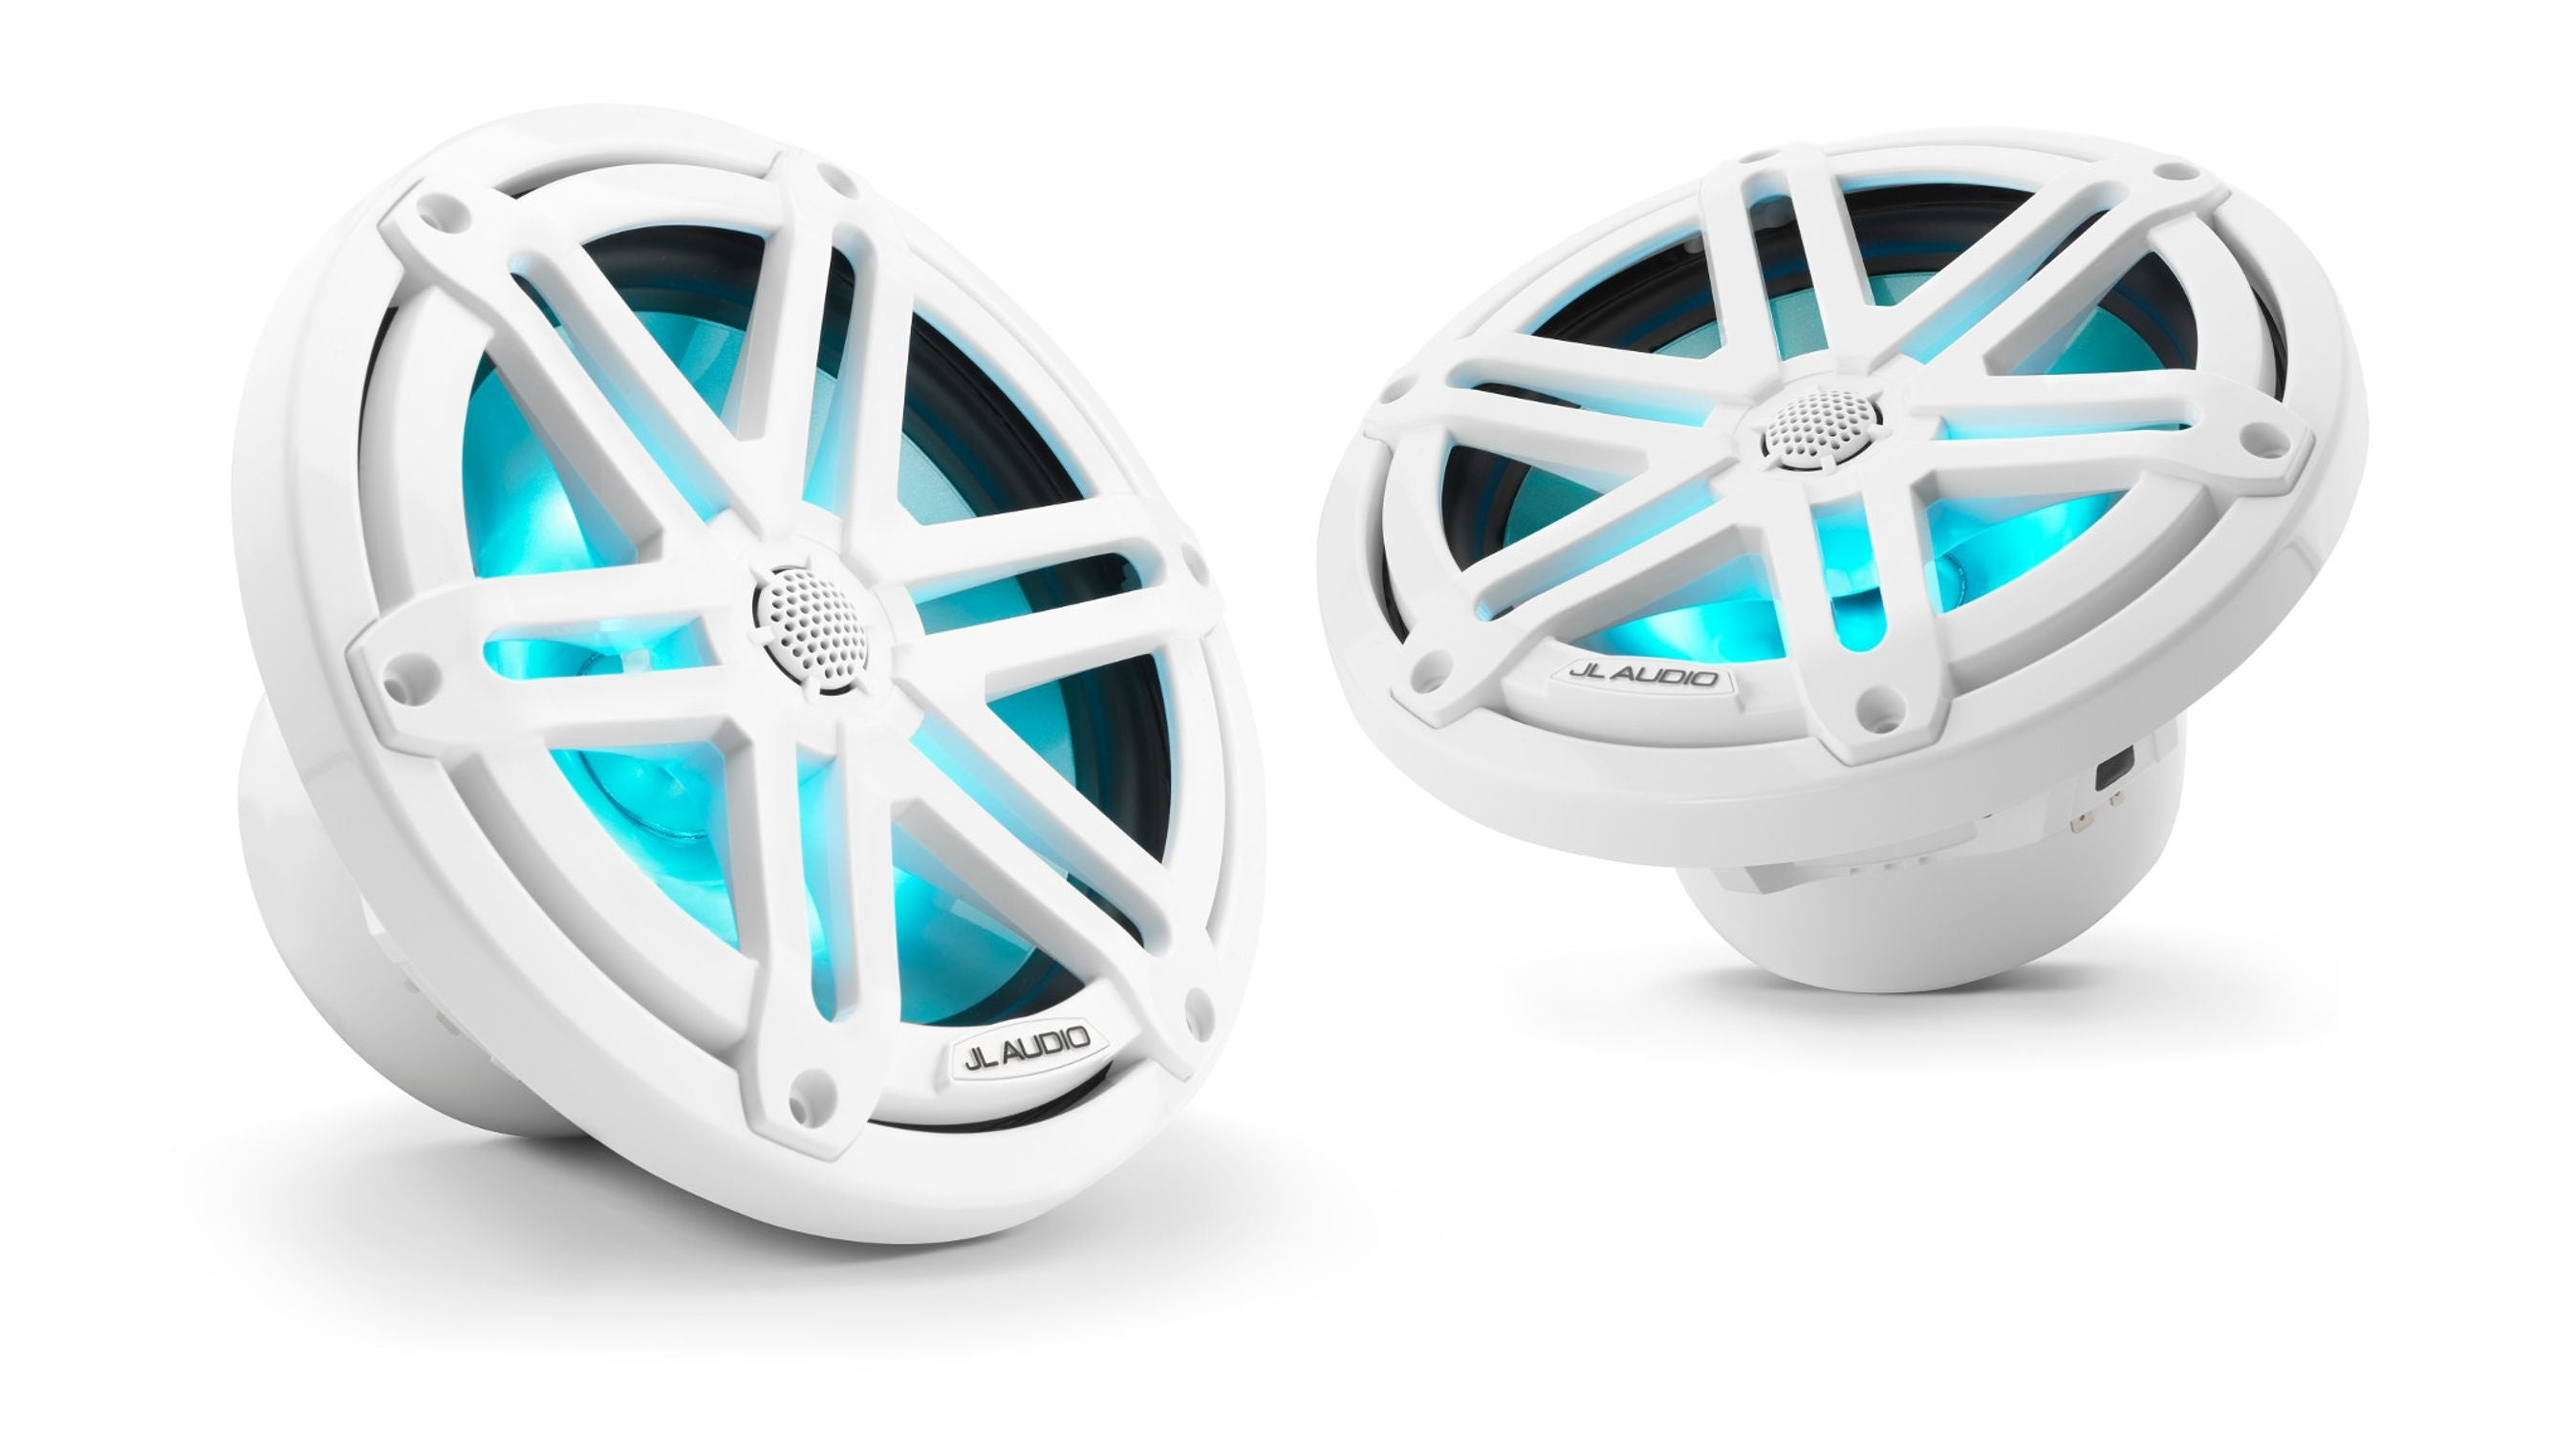 Pair of M3-770X-S-Gw-i Coaxial Speaker Lit with Aqua